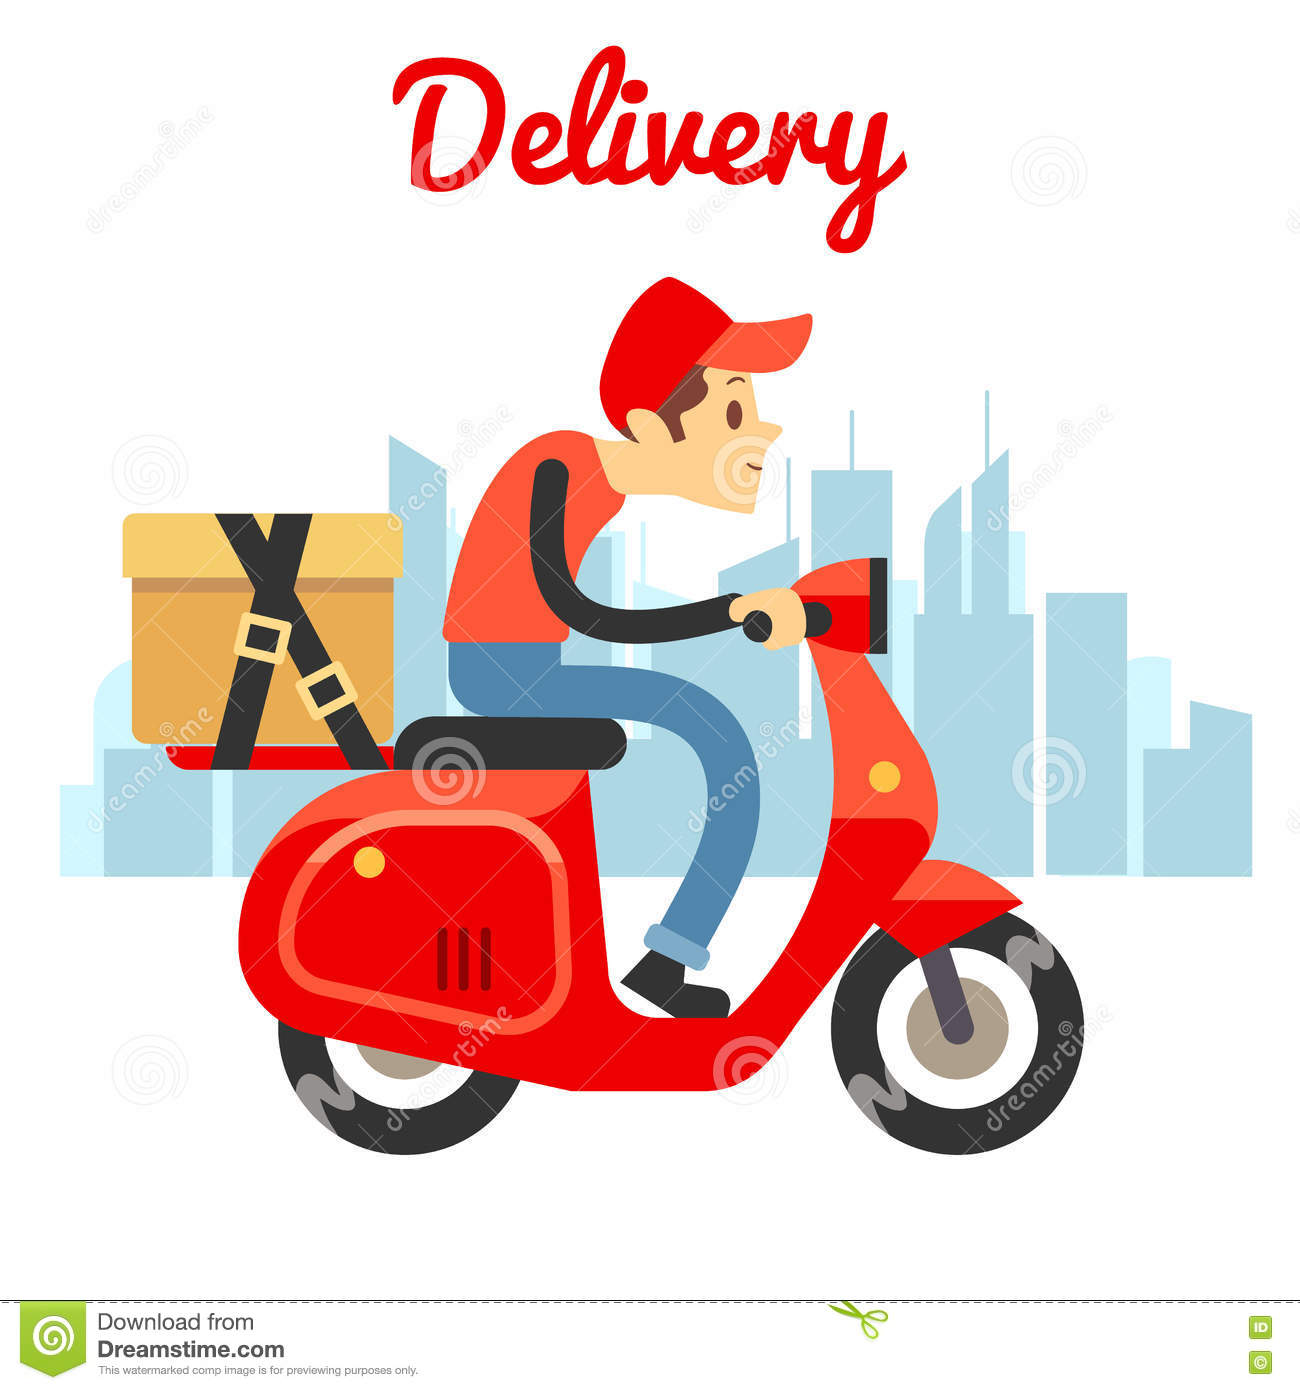 Best Food Delivery Service To Drive For